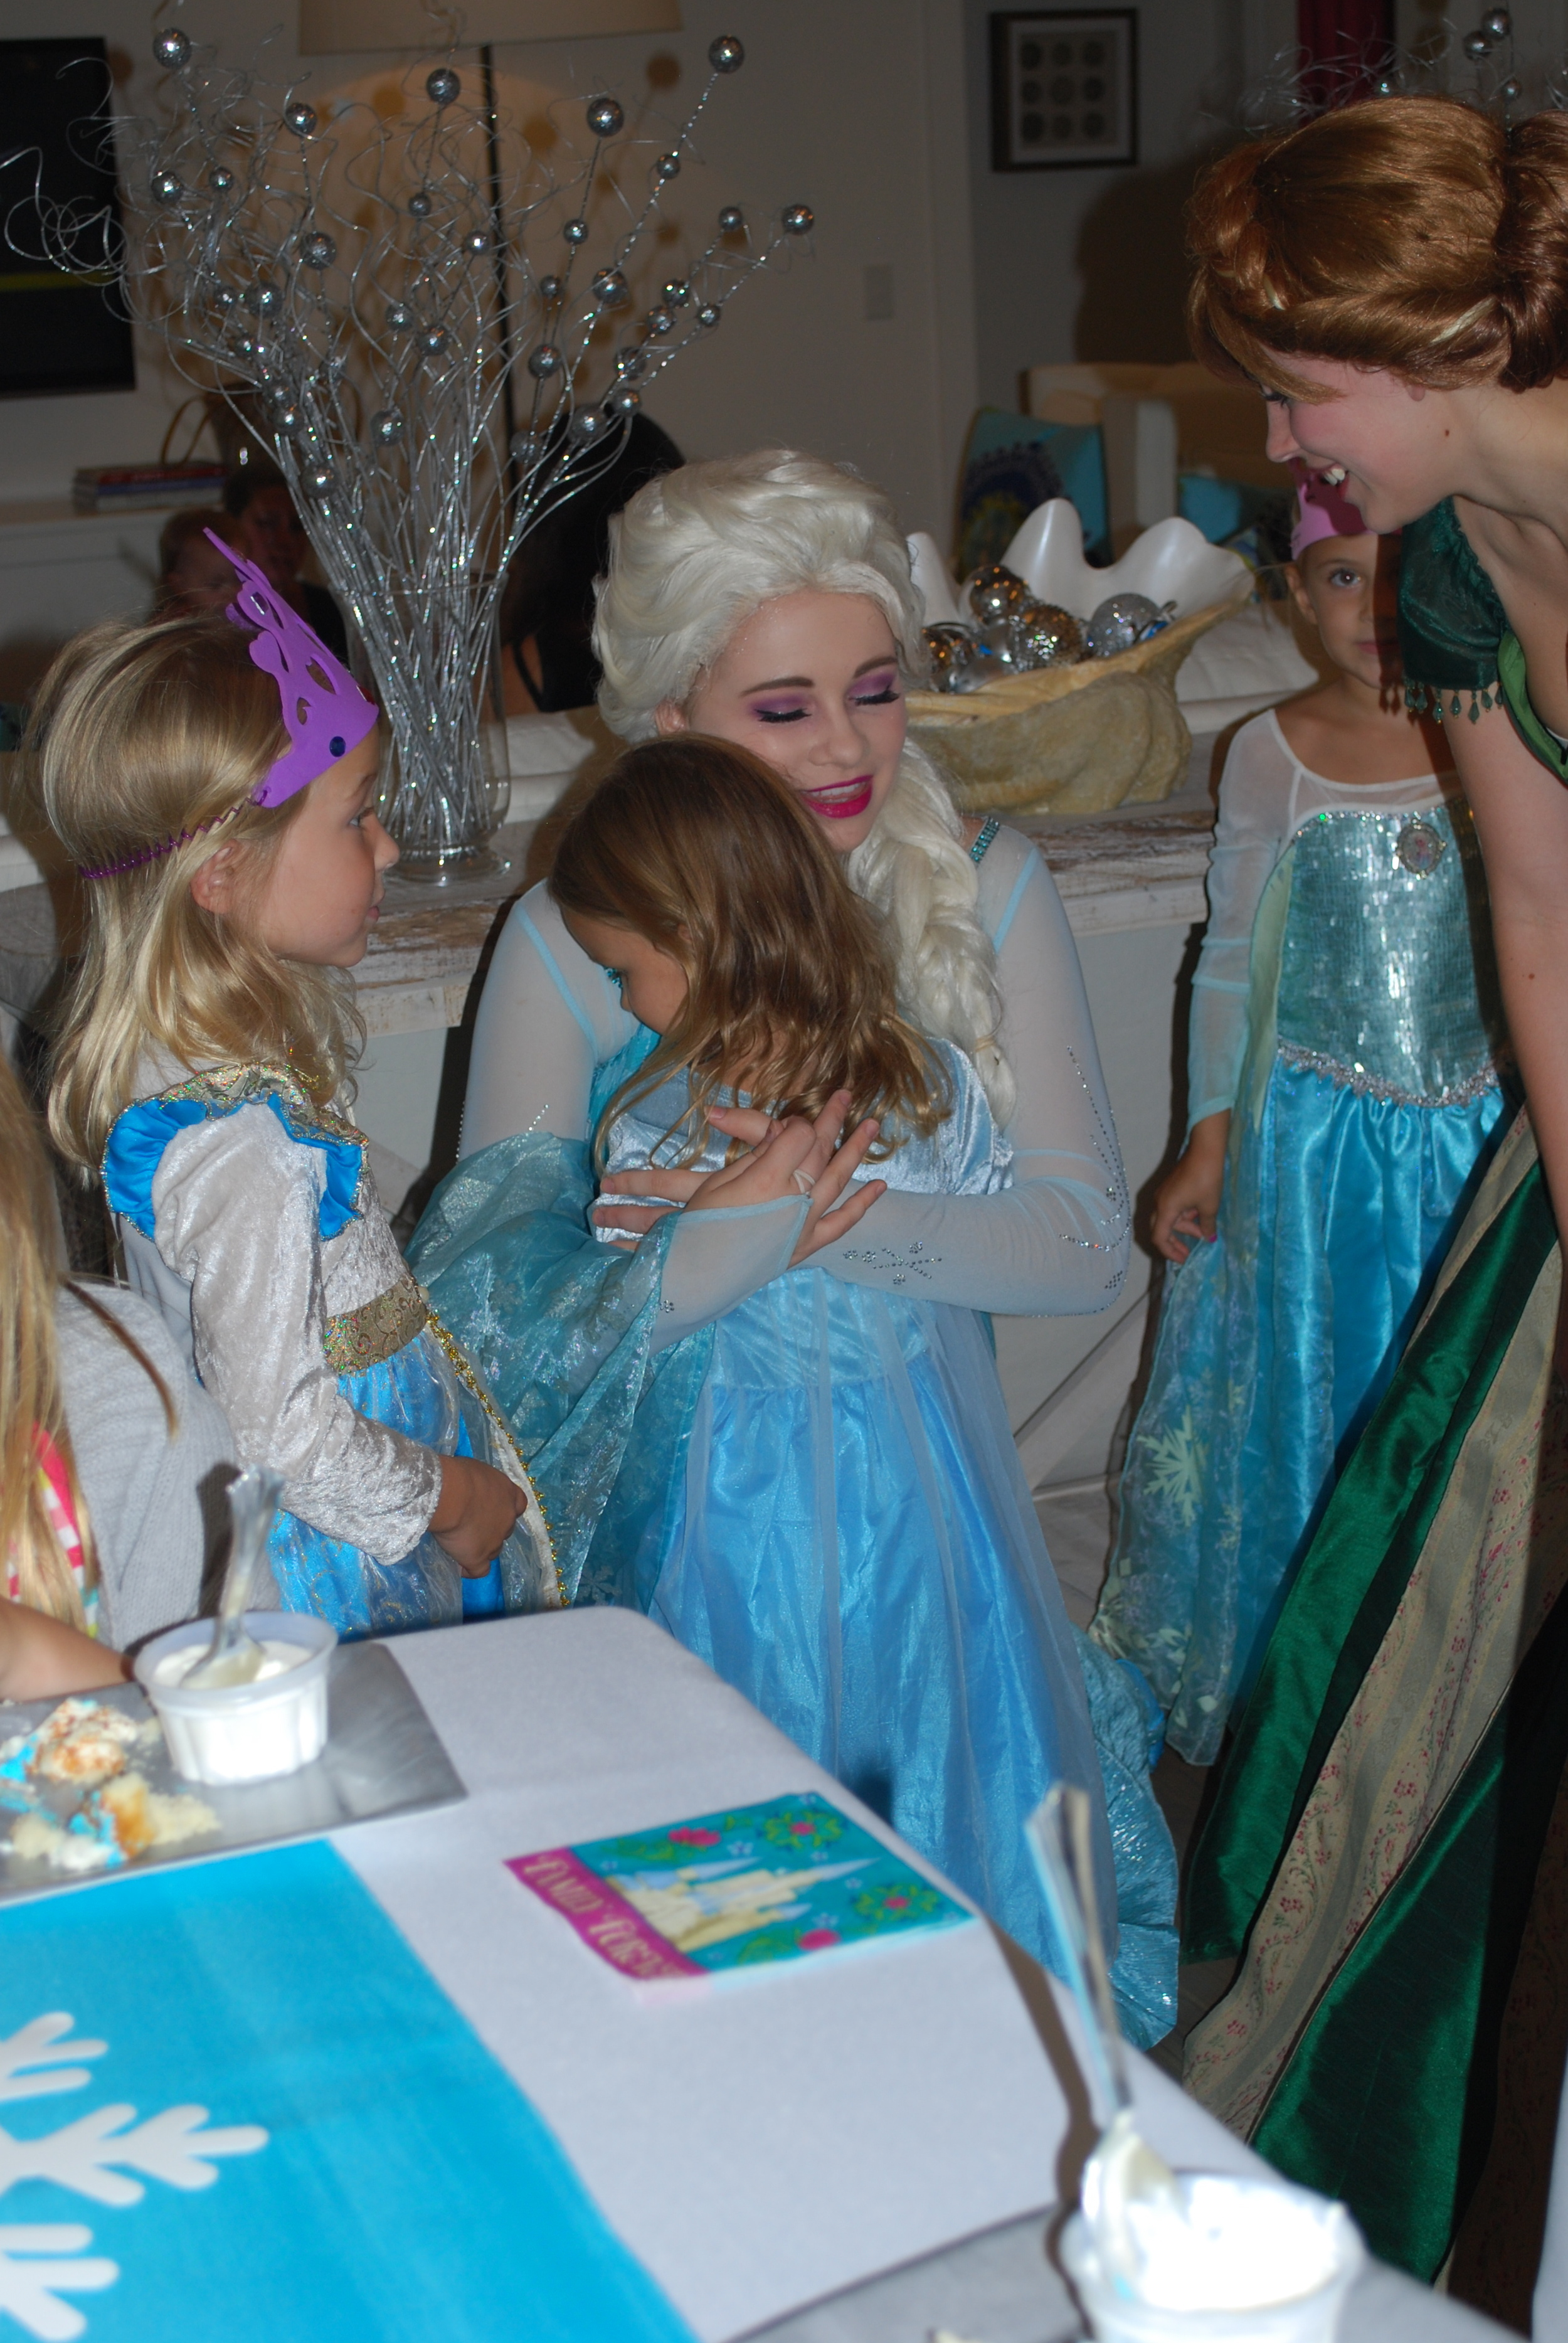 We didn't want Elsa and Anna to go